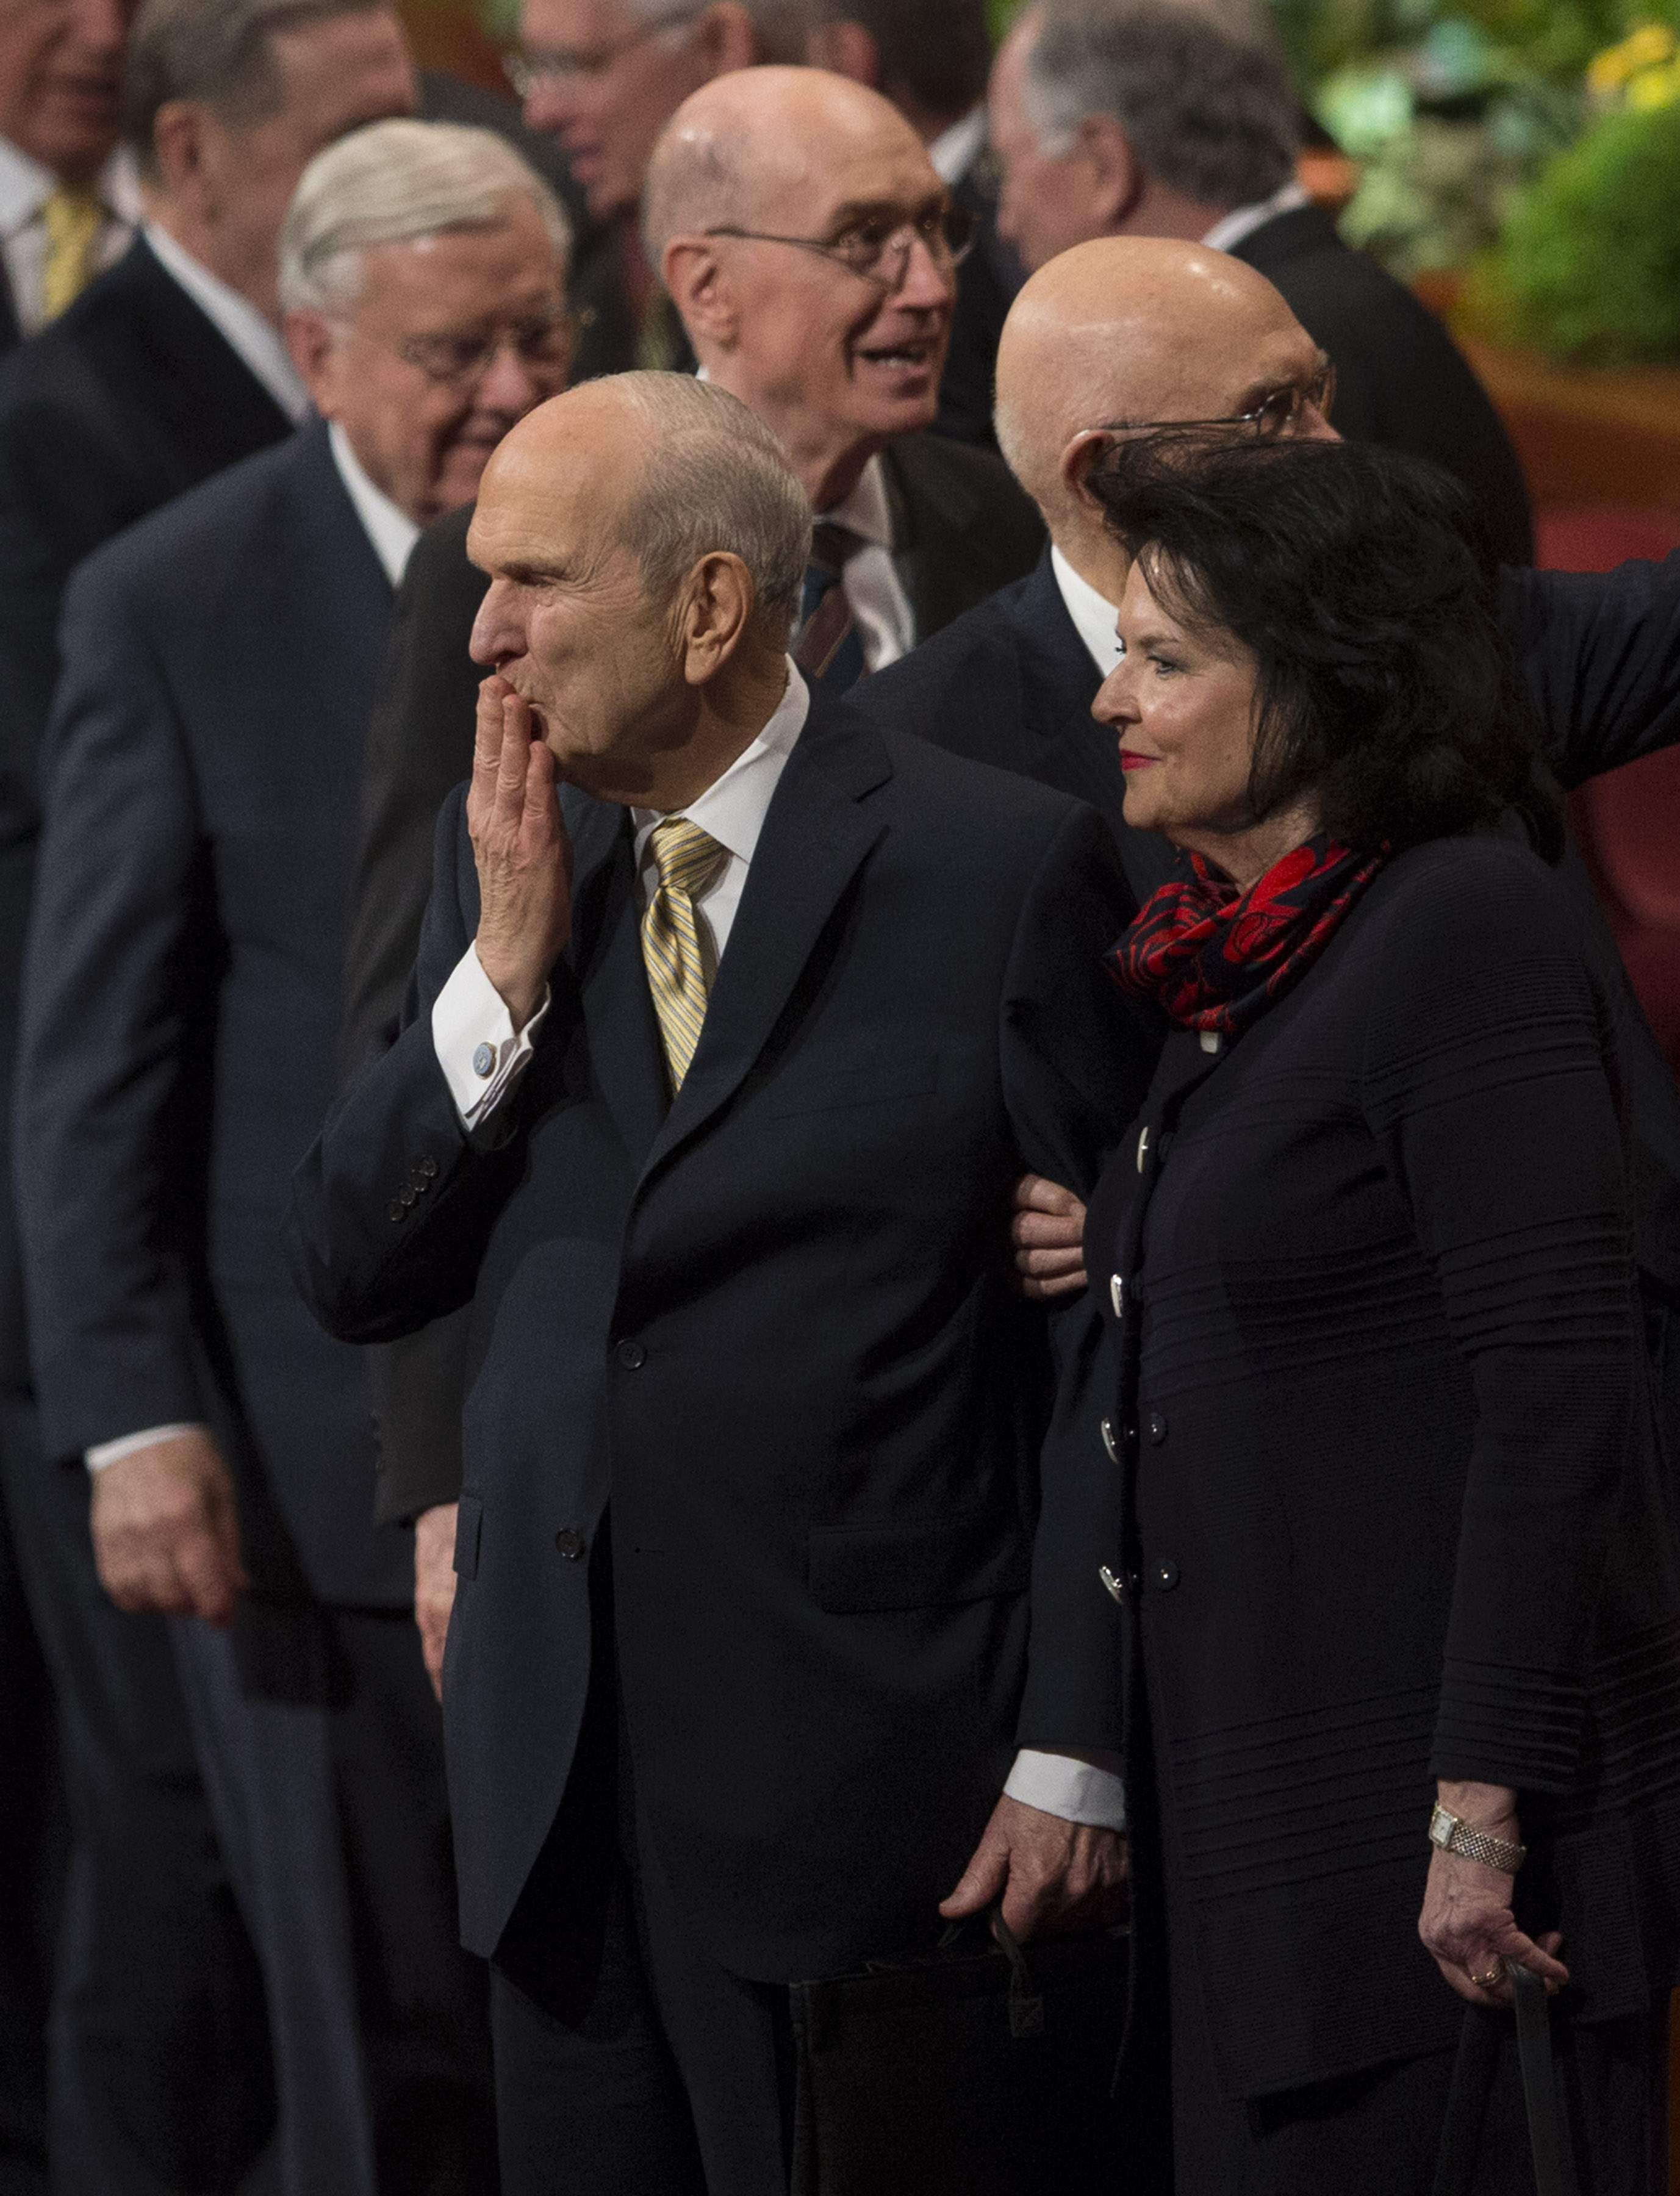 LDS Church President Russell M. Nelson and his wife, Sister Wendy Watson Nelson, exit following the Sunday afternoon session of the 188th Annual General Conference of The Church of Jesus Christ of Latter-day Saints, in the Conference Center in Salt Lake City on Sunday, April 1, 2018.